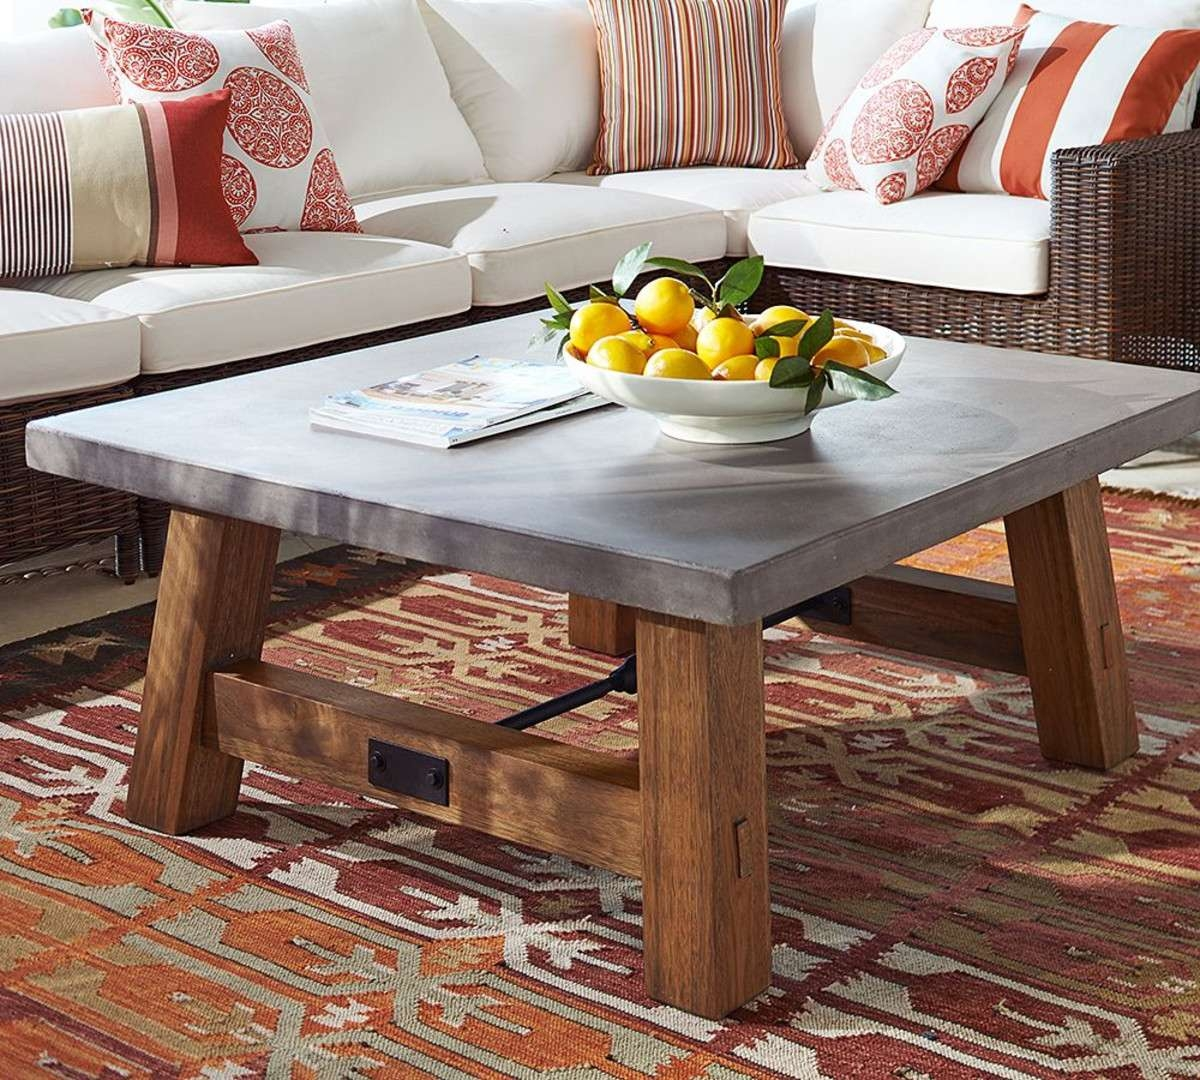 View Photos Of Ethnic Coffee Tables Showing Of Photos - Pottery barn concrete coffee table